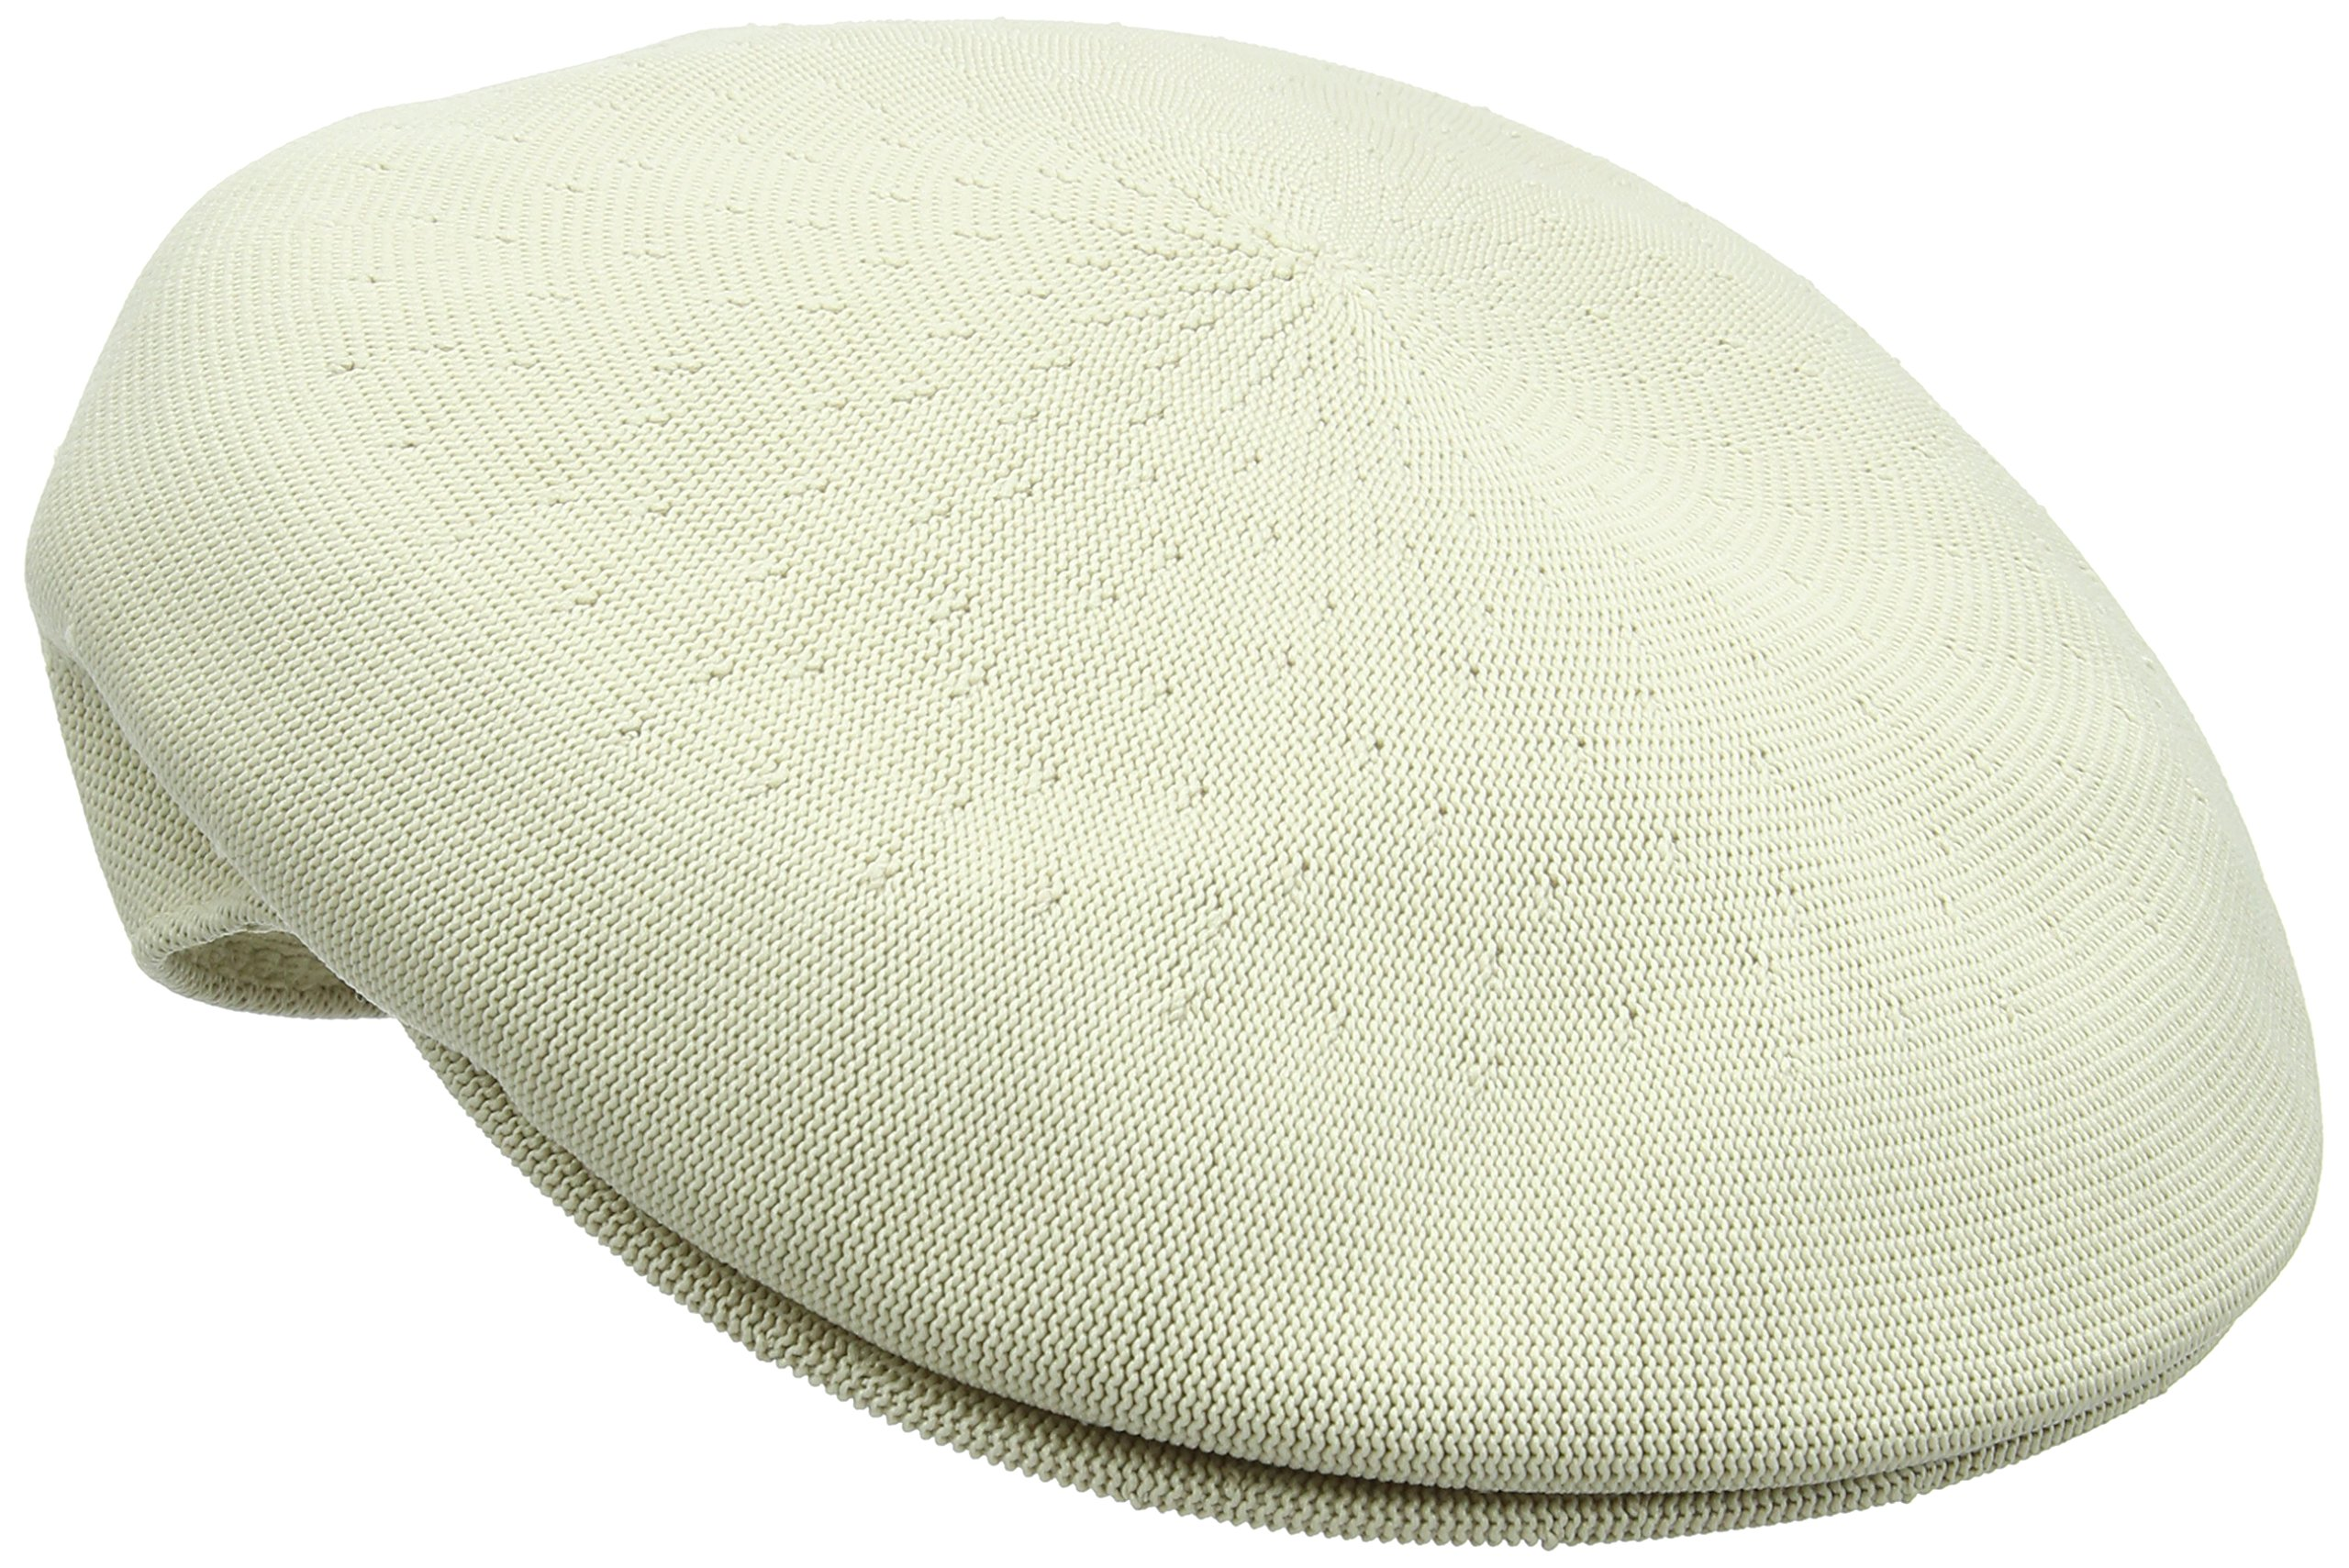 Best Rated in Men s Newsboy Caps   Helpful Customer Reviews - Amazon.com 91f70a47cd2